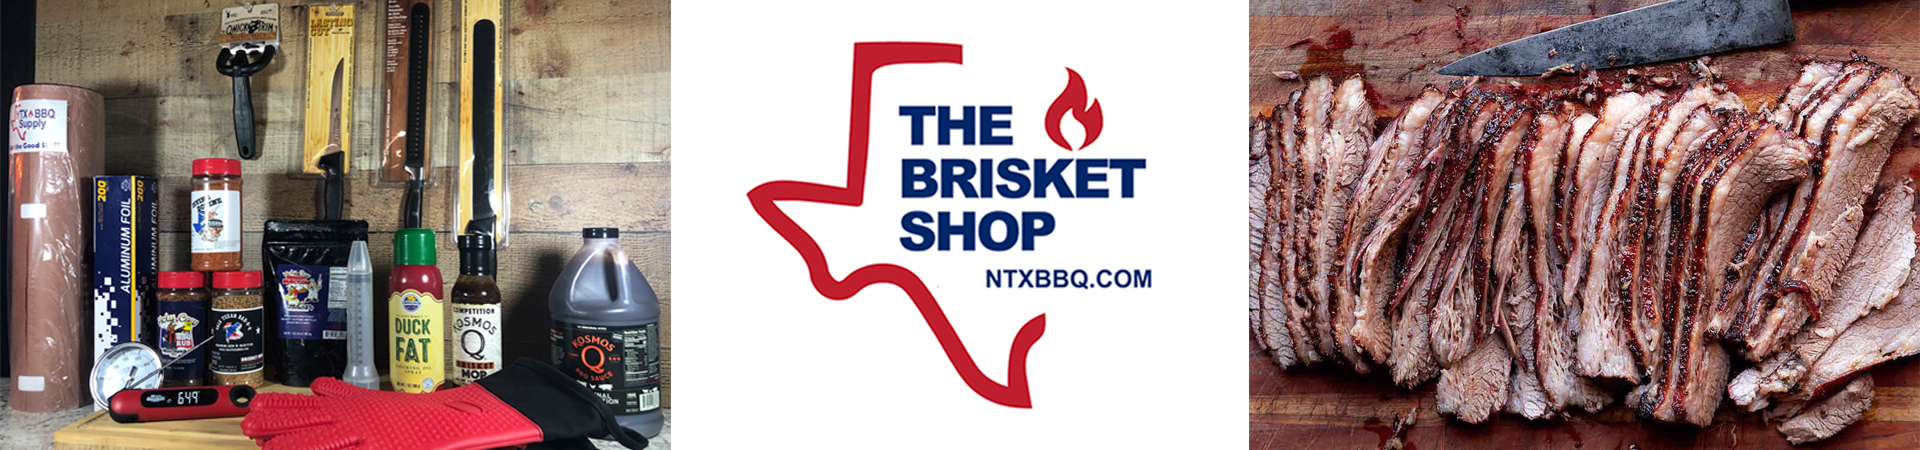 the-brisket-shop-banner.jpg